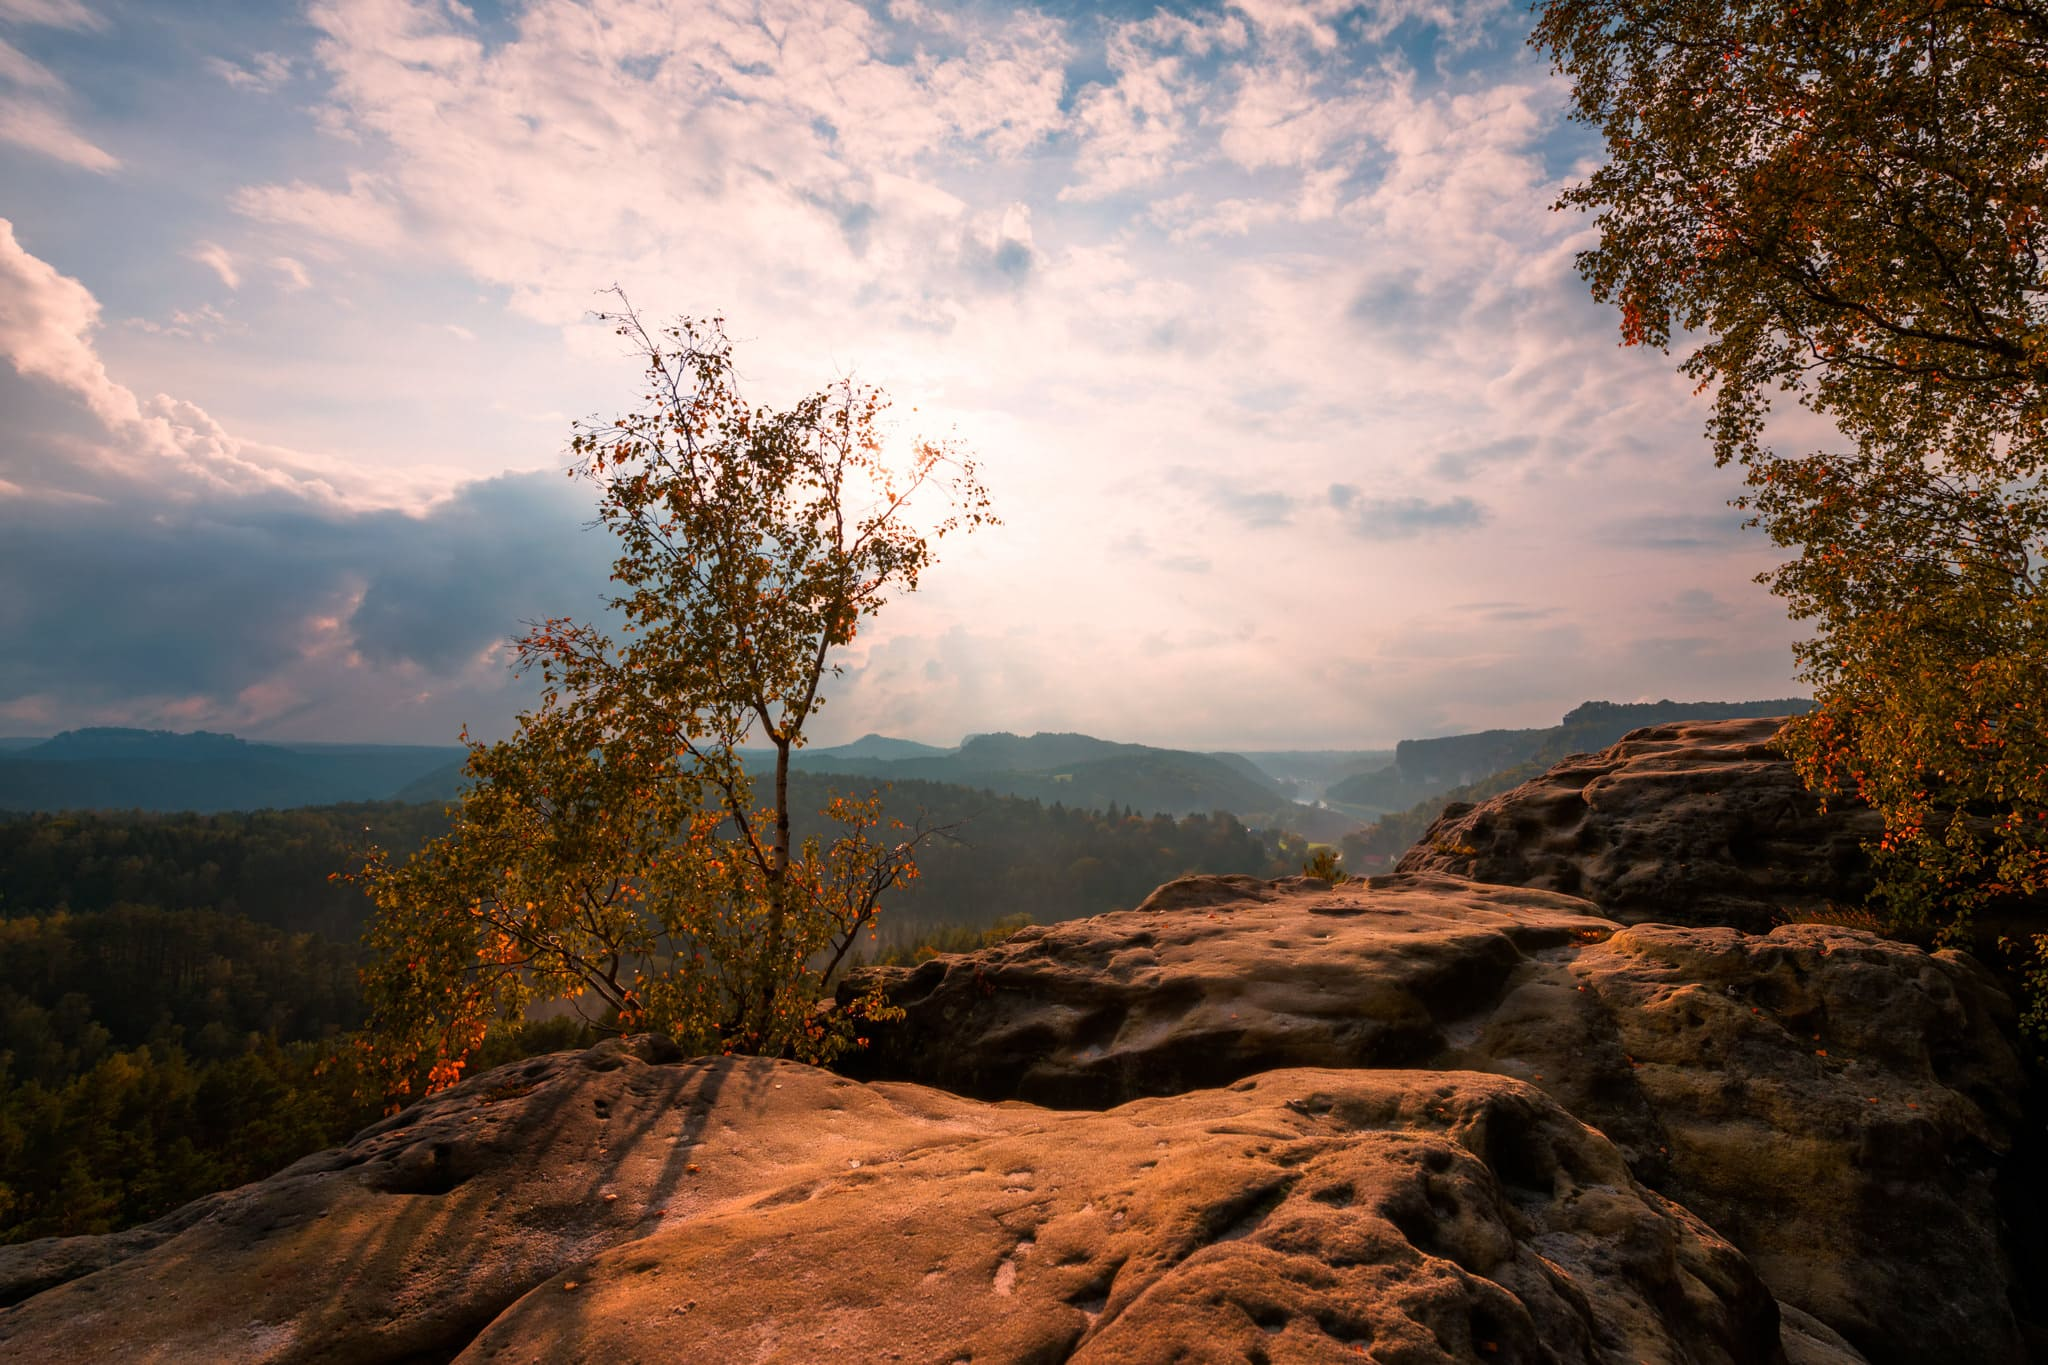 Saxon Switzerland Valley from Gamrig - a sunset view in Germany.